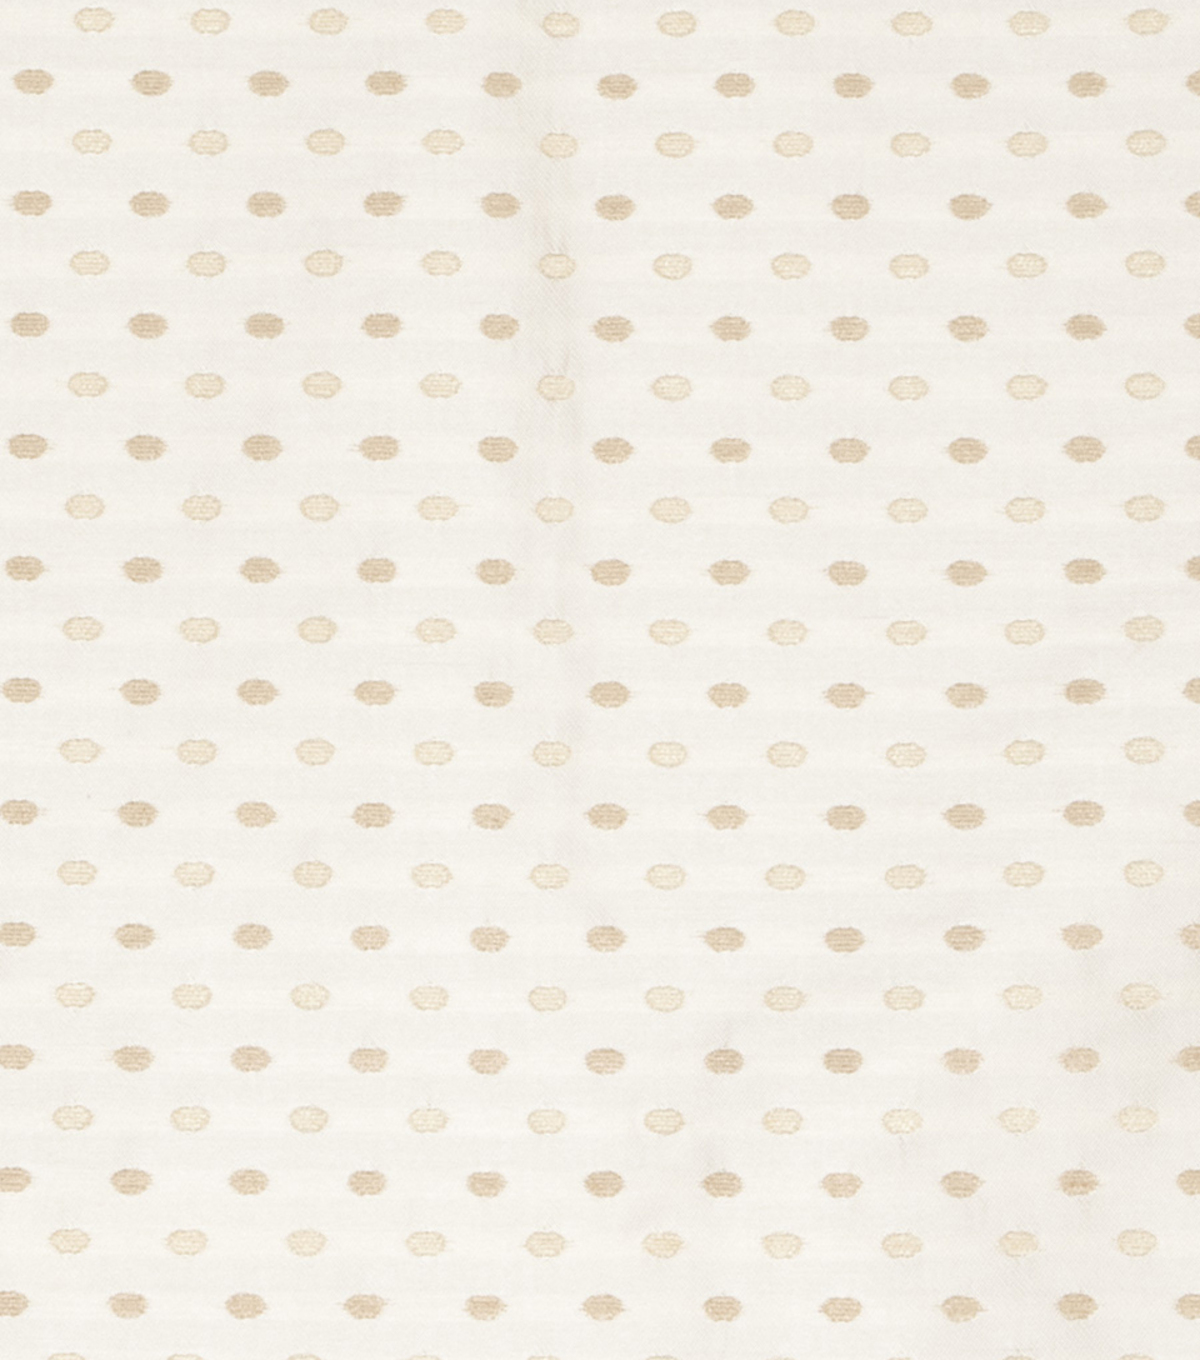 Home Decor 8\u0022x8\u0022 Fabric Swatch-Print Fabric Eaton Square Sondra Oyster